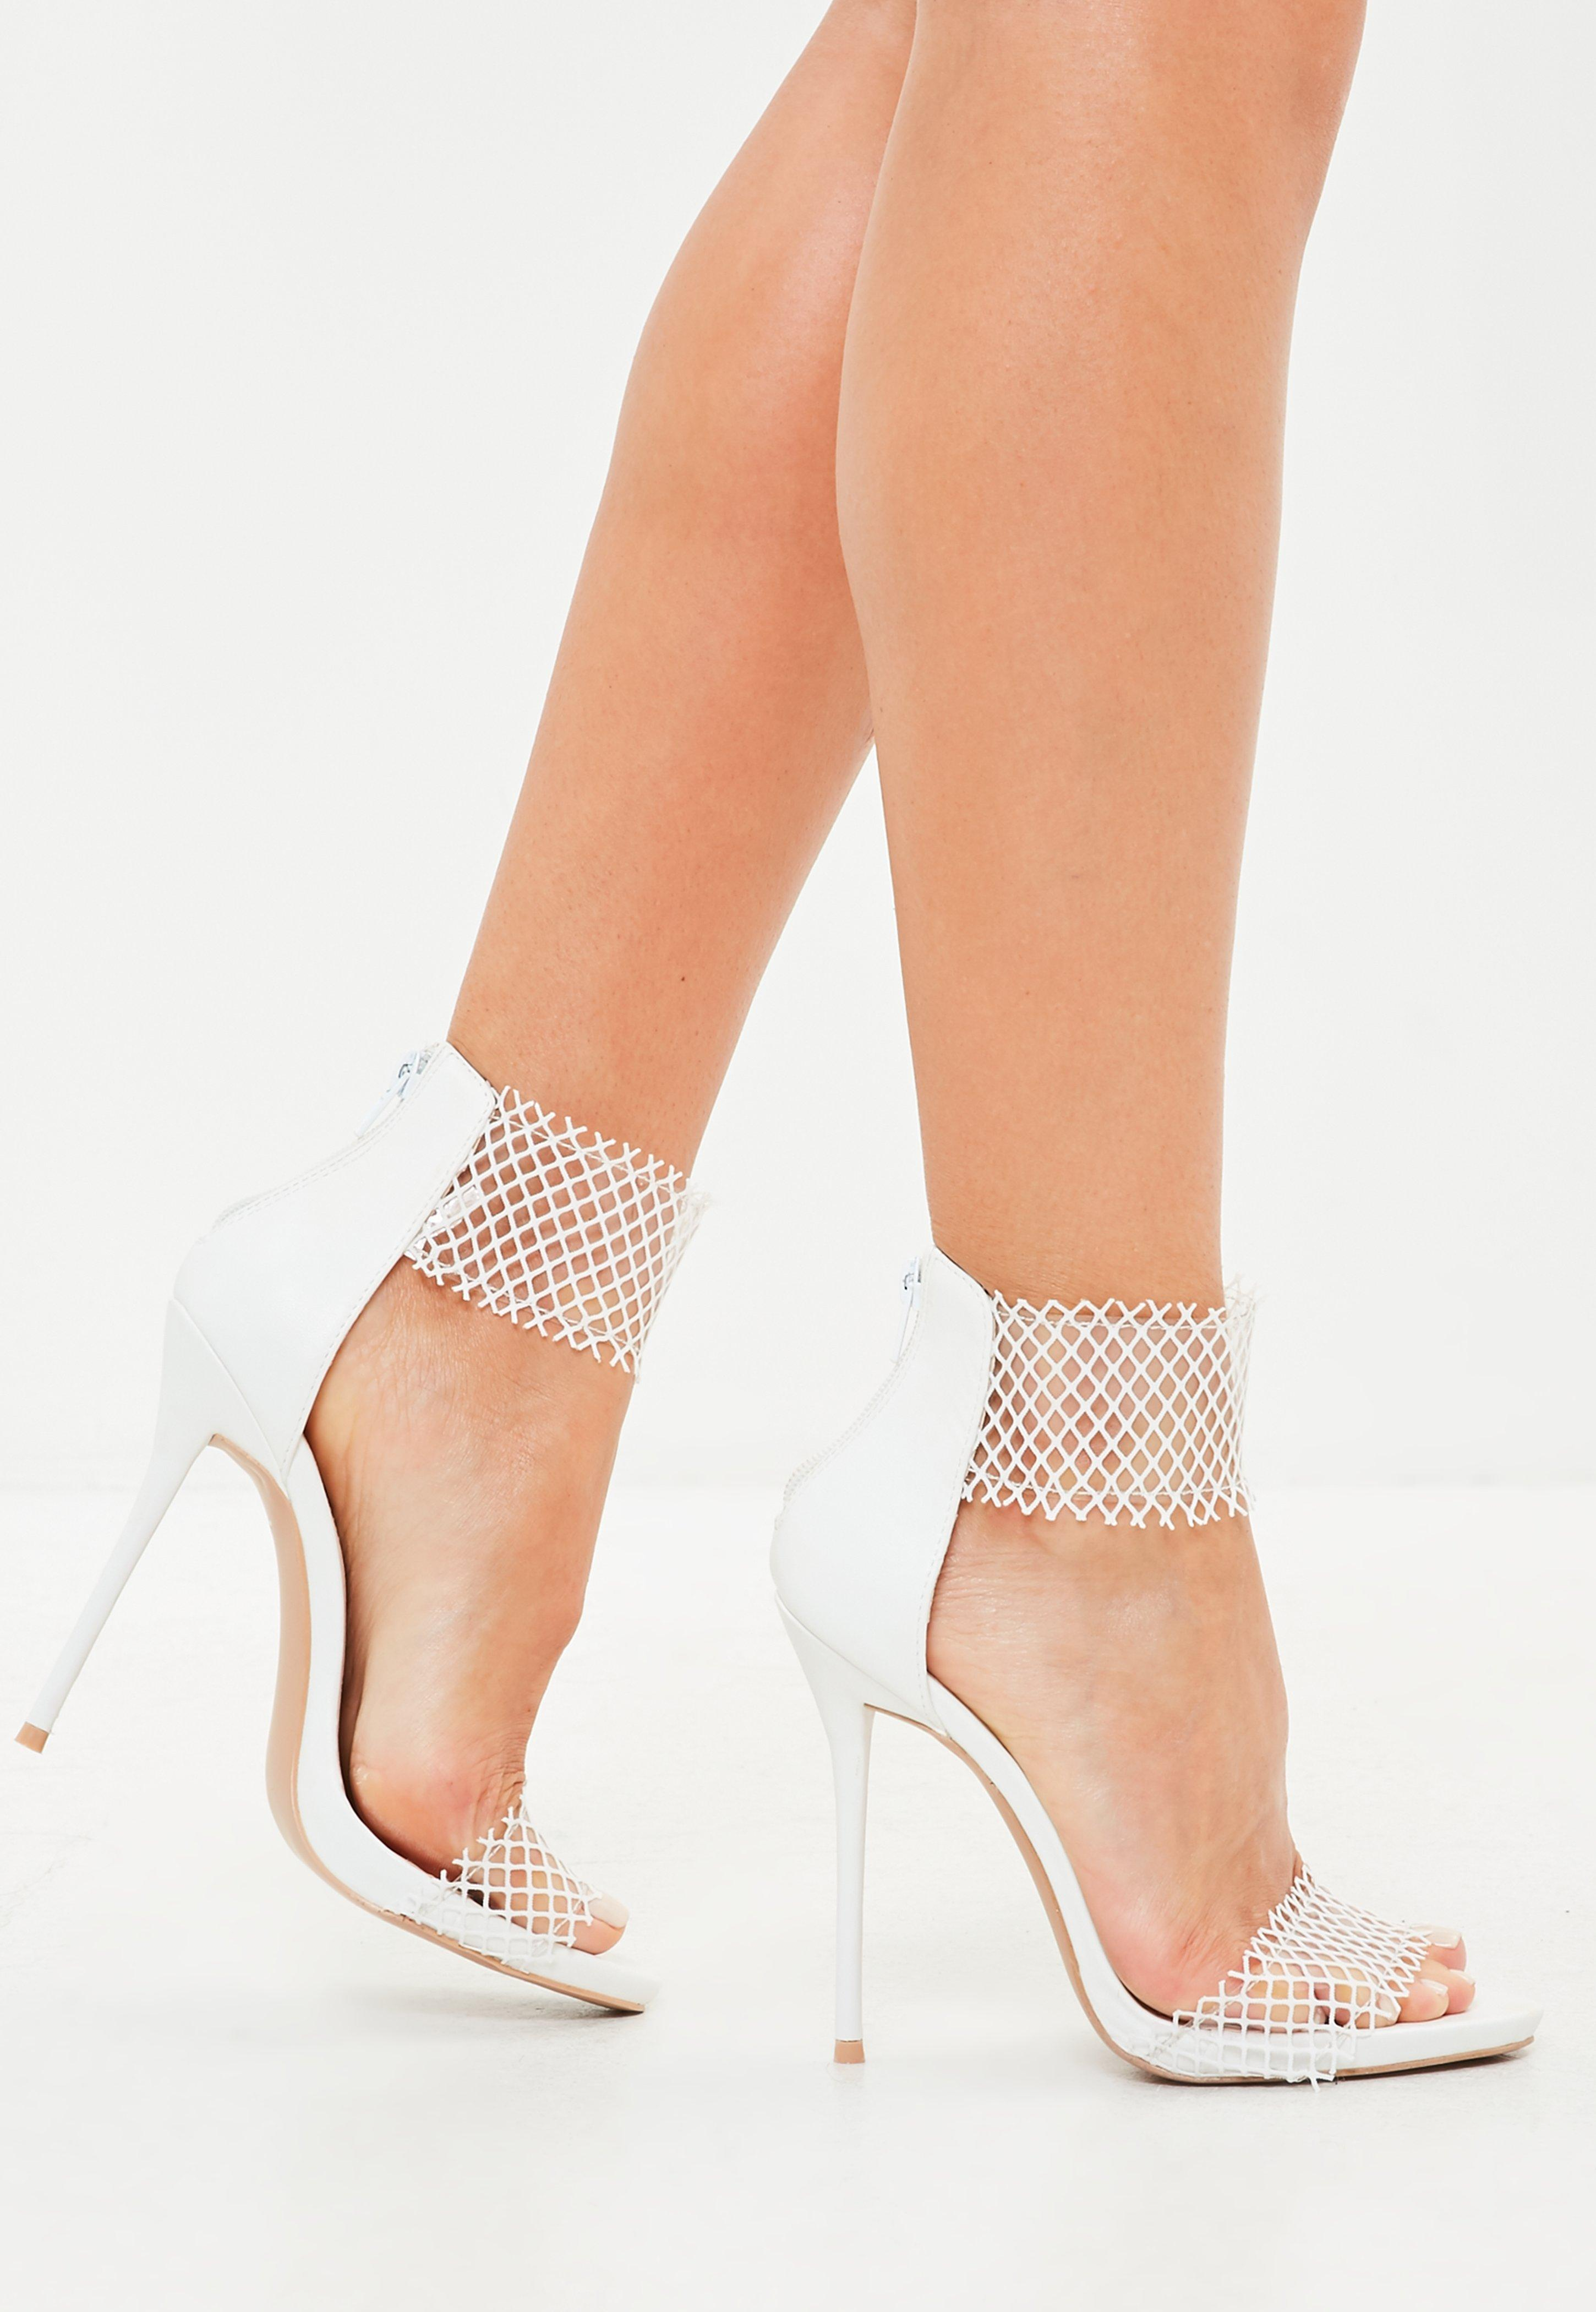 d4b52fb4095d Lyst - Missguided White Mesh Clear Barely There Sandals in White